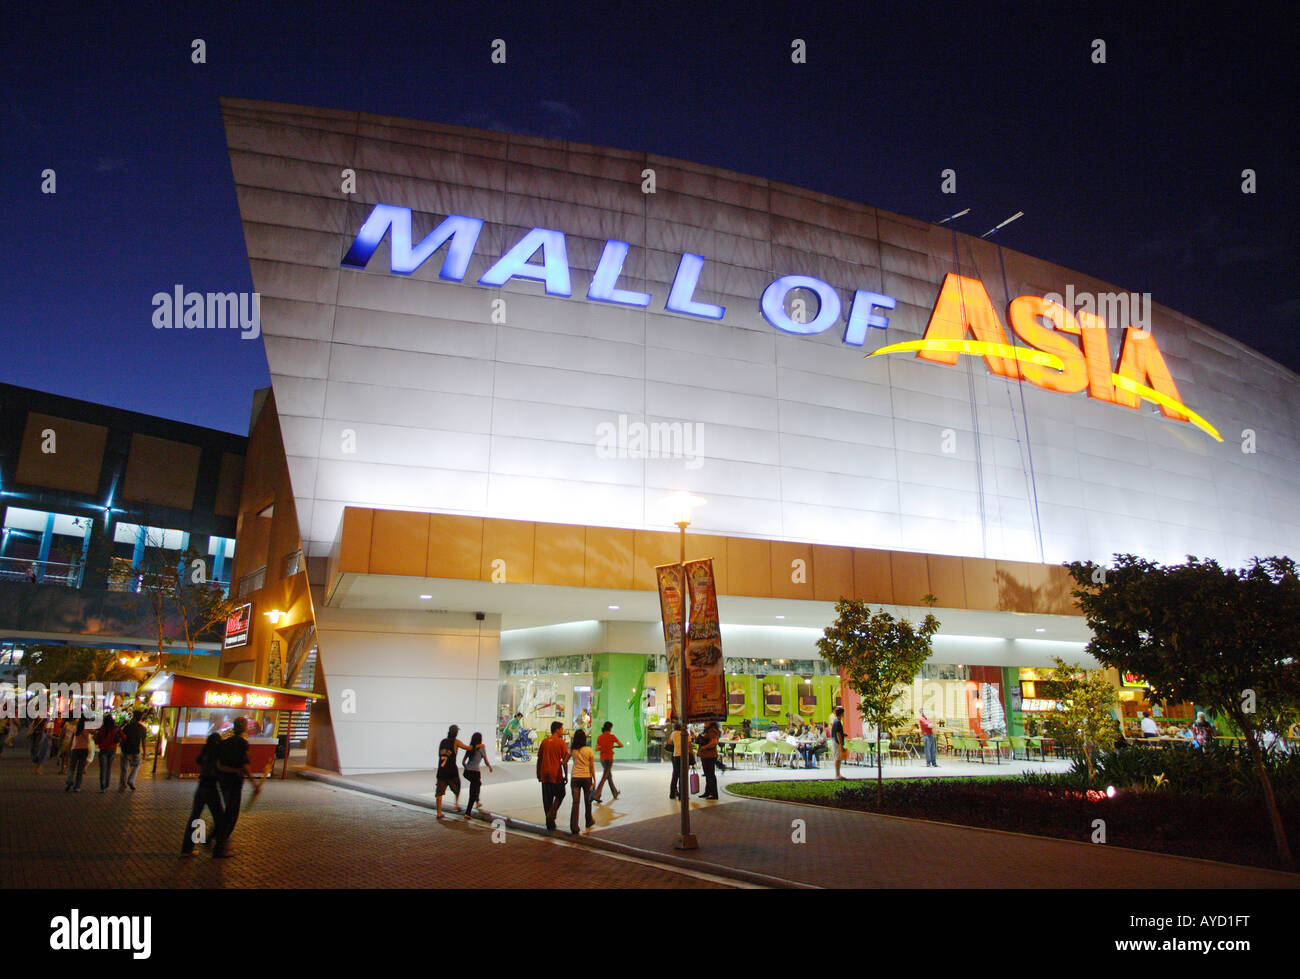 Manila, The Philippines: 'Mall of Asia', the biggest shopping center of Asia - Stock Image